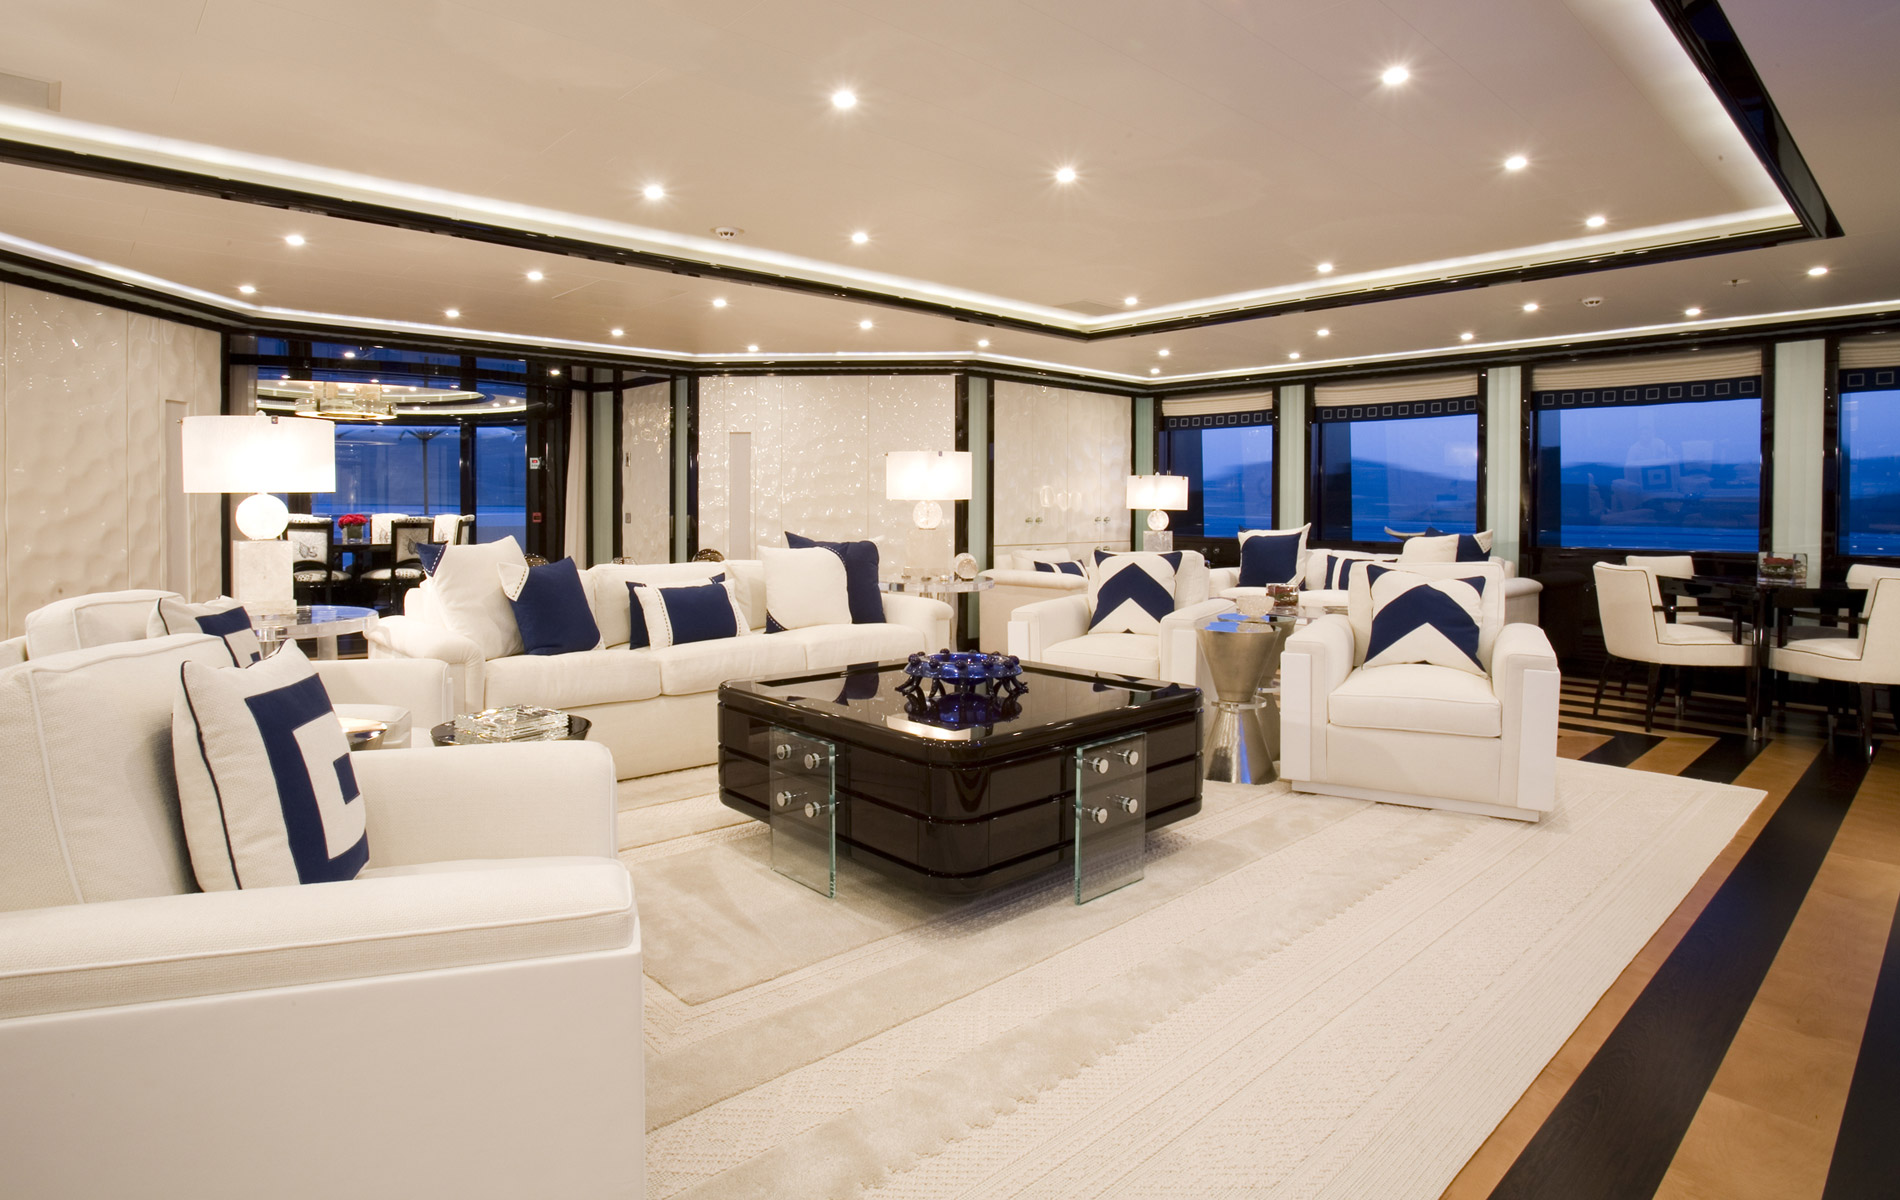 Inside Luxury Yachts Get Inside This Luxury Yachts With Gorgeous Interiors